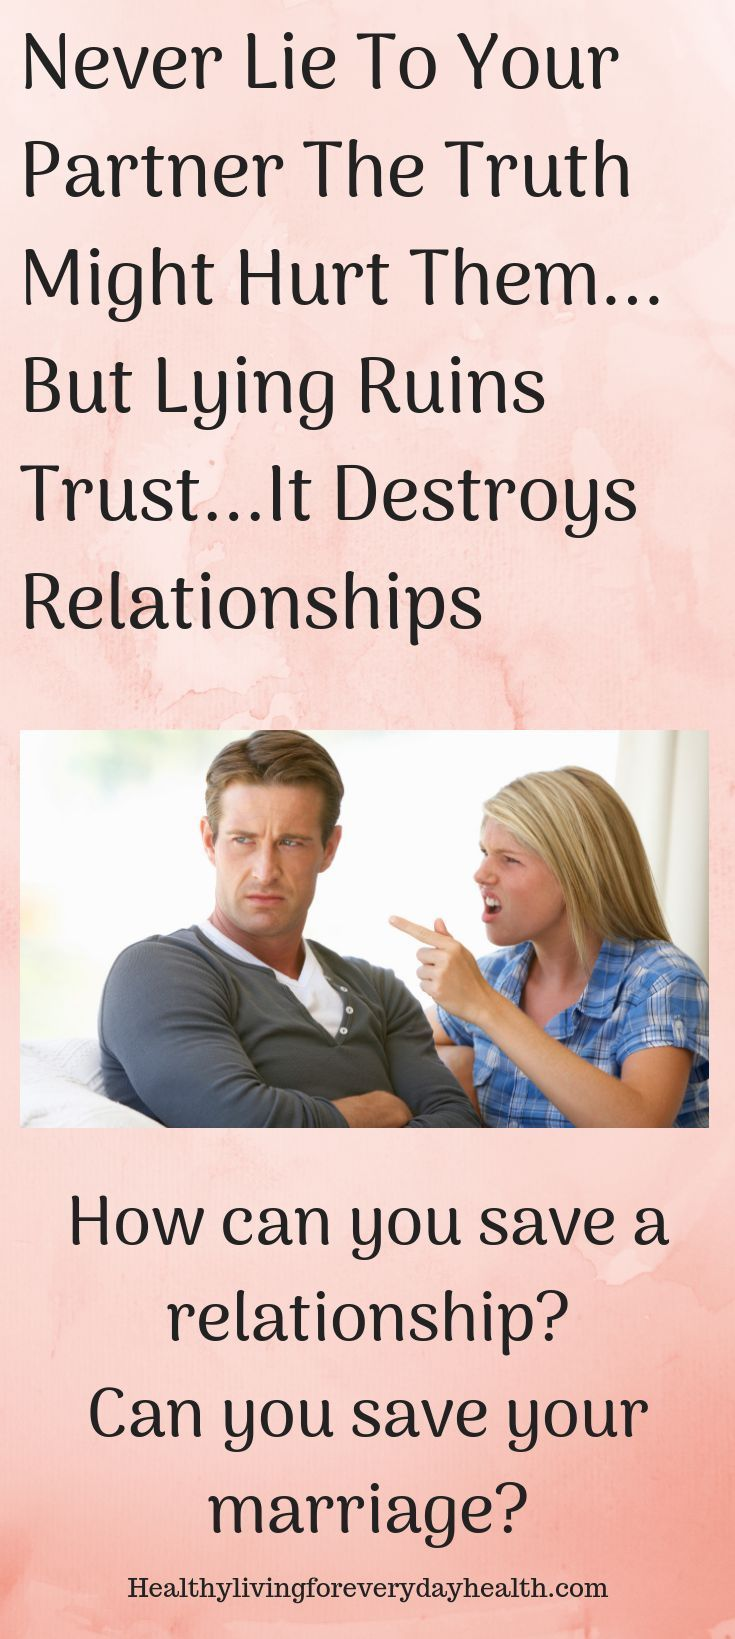 My Husband Is Lying To Me   Relationship problems breakup